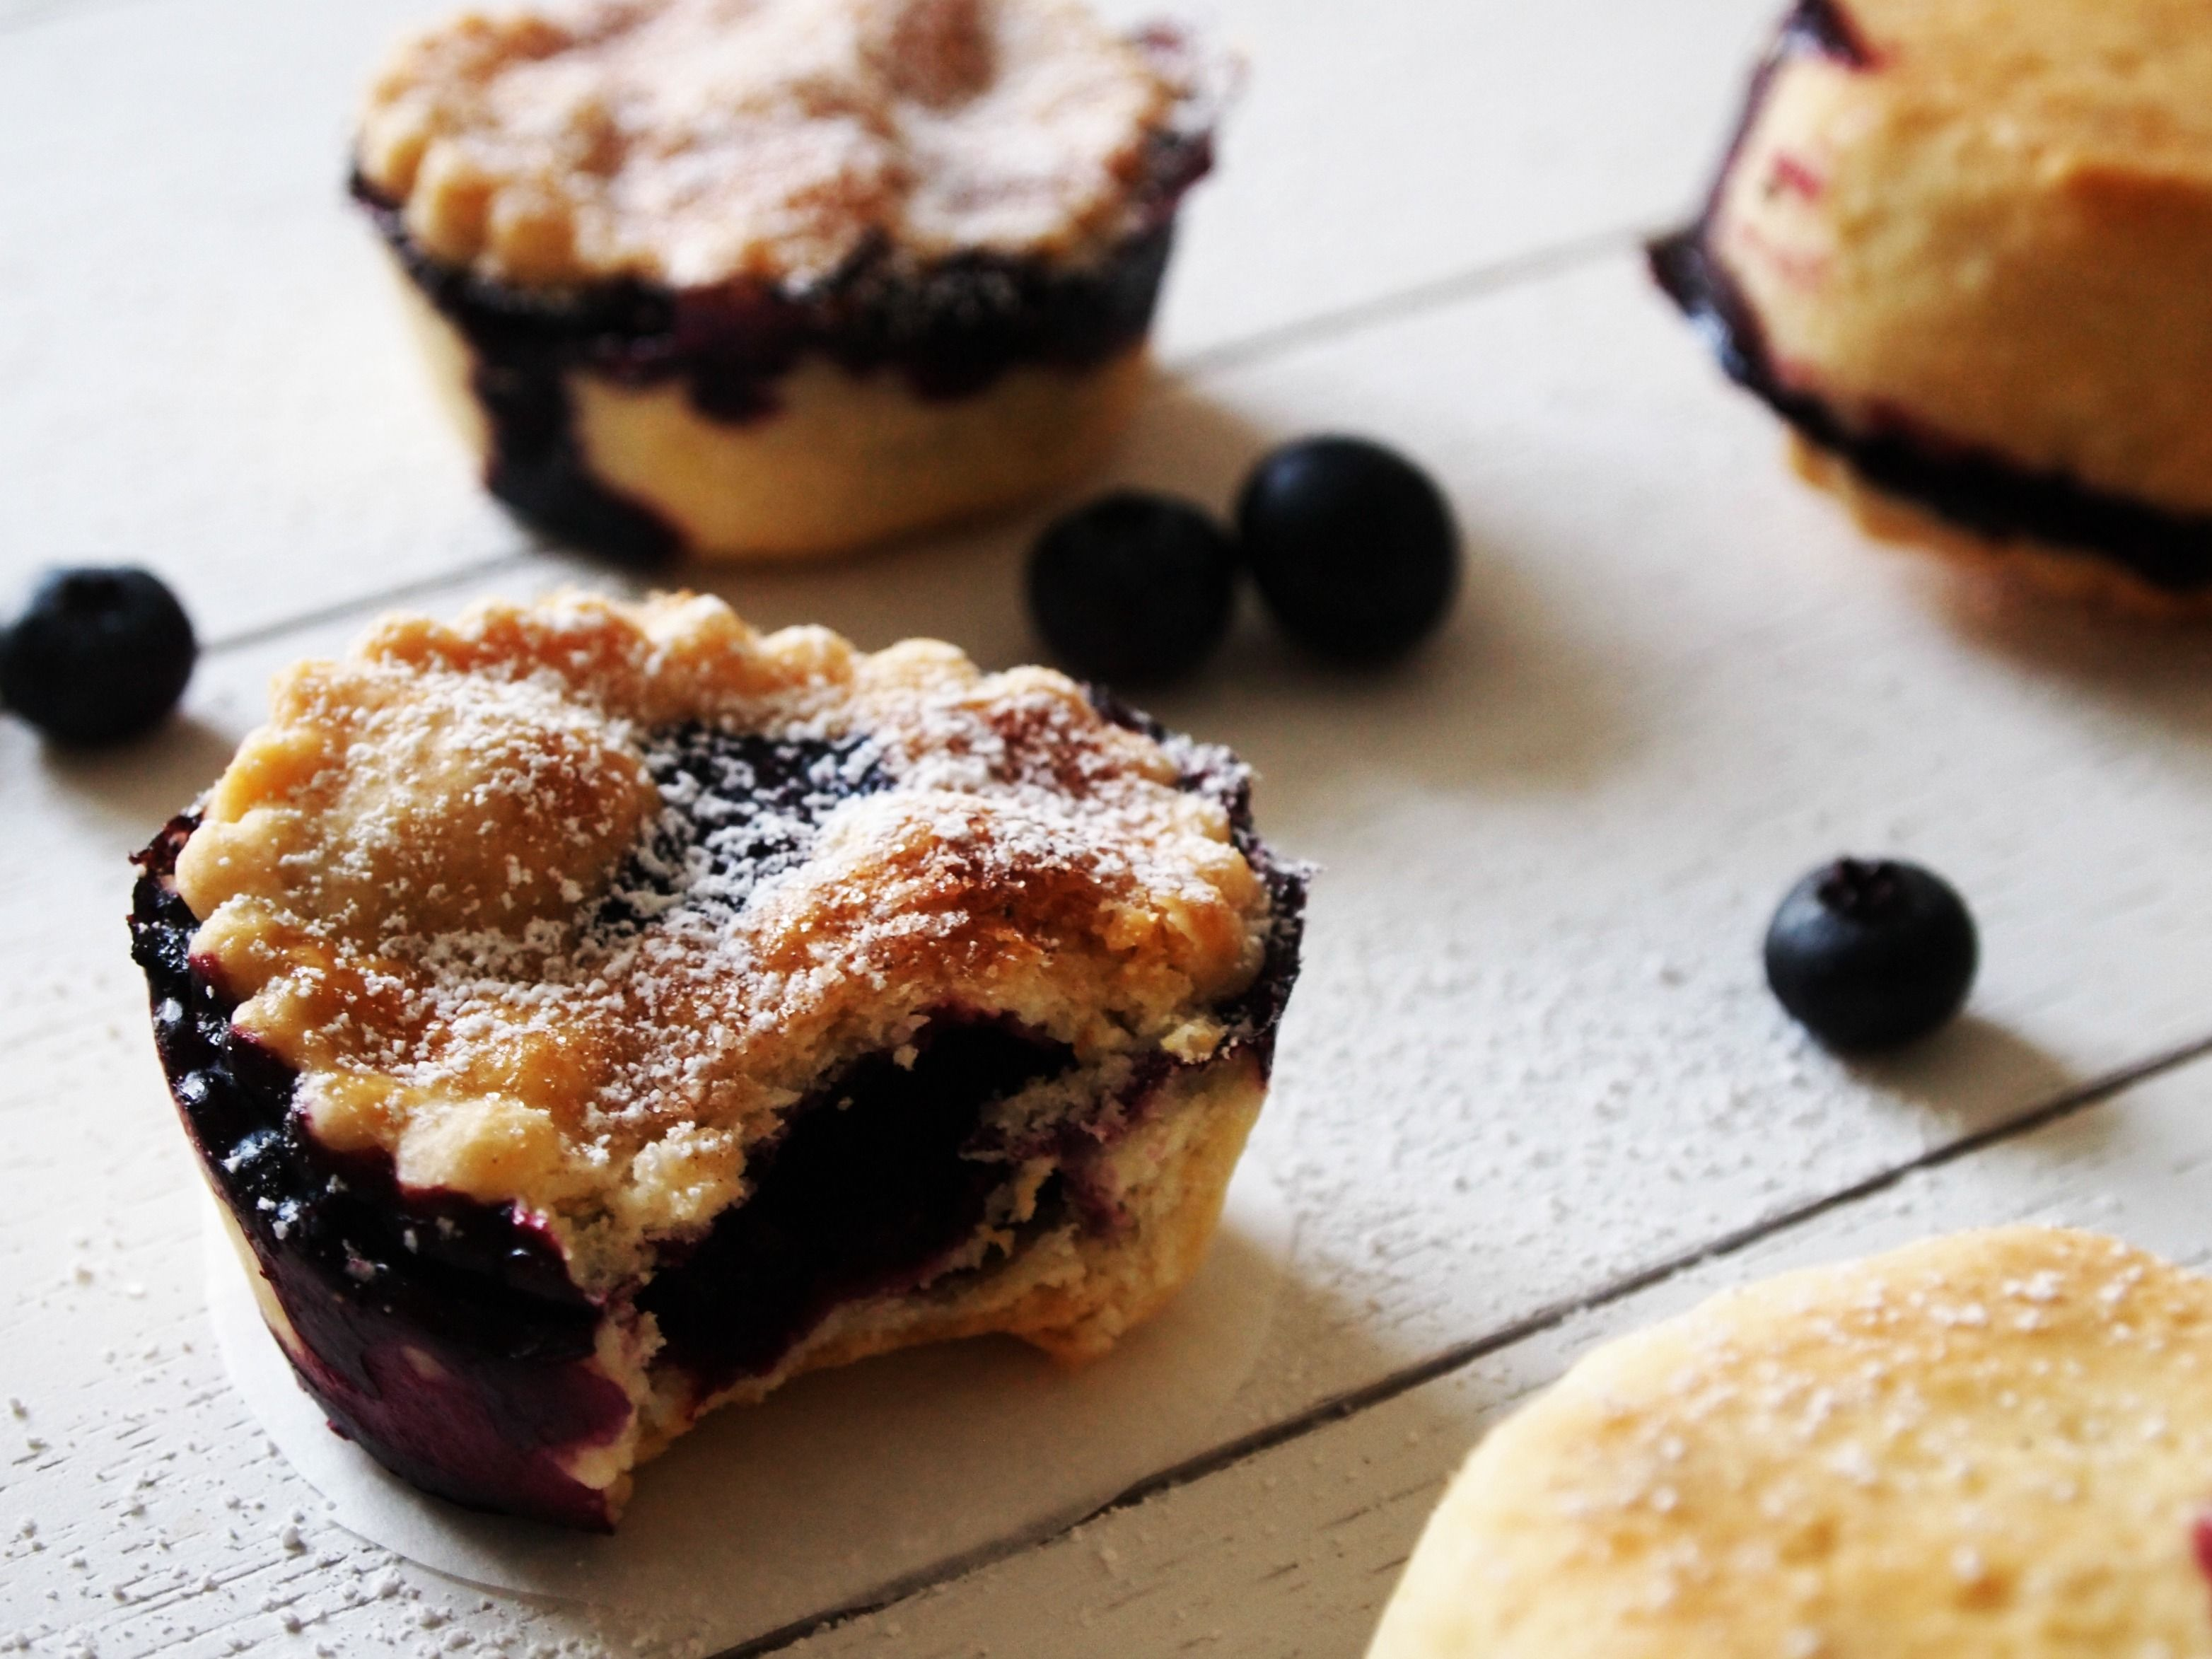 Mini Blueberry Pies recipe - in German but link for English recipe is included